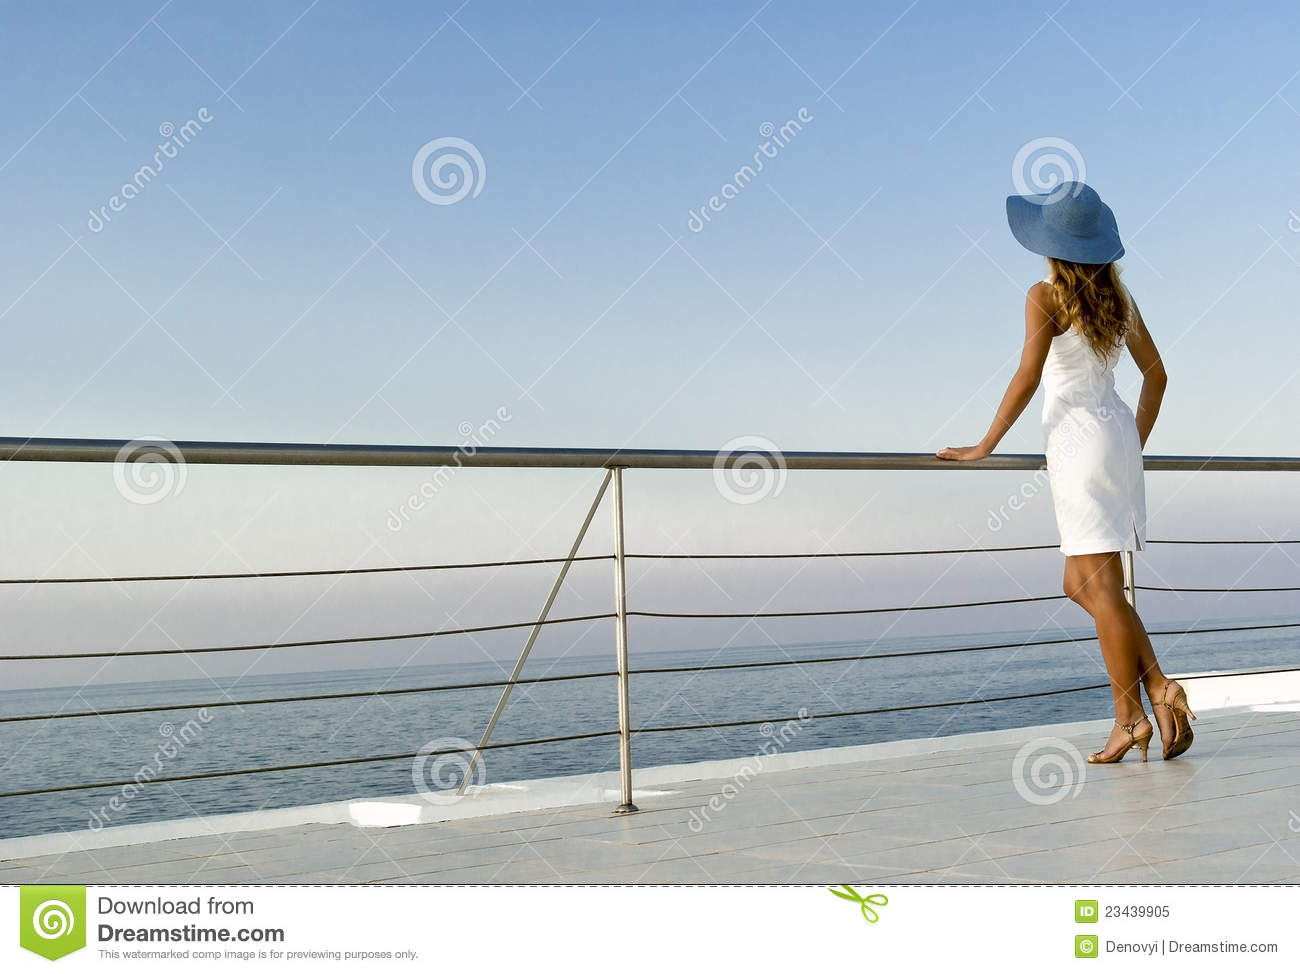 Woman standing near railings and looking far